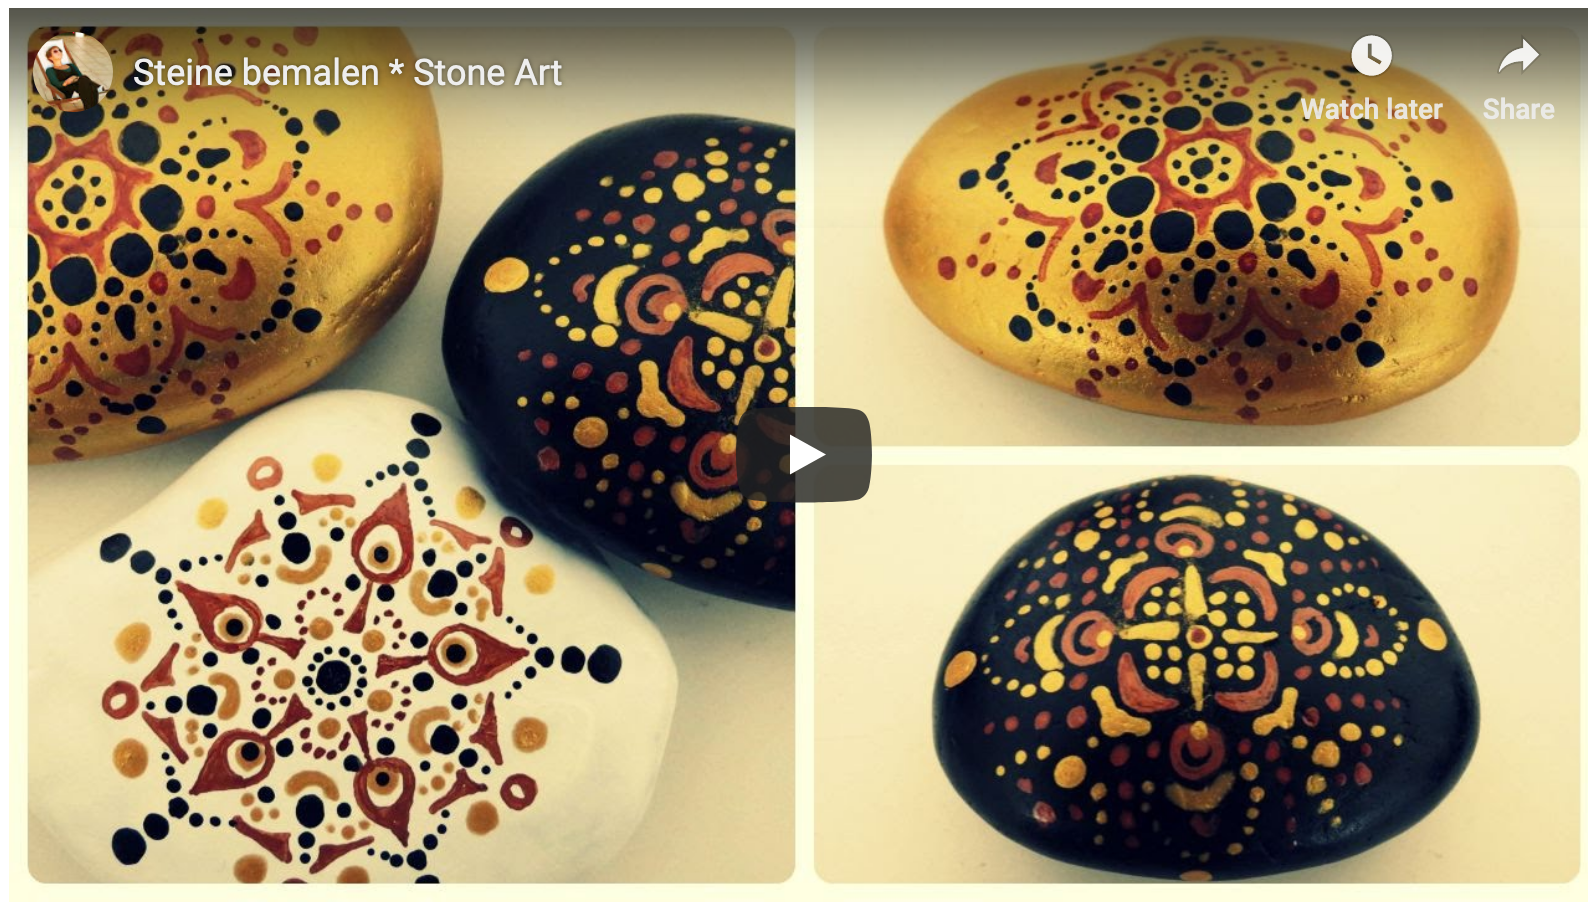 Mandala Stones How to Paint Mandalas on Stones Part 2 is part of Mandala stones, Stone painting, Stone art, Stone, Stone crafts, Painted rocks - Three more videos on painting mandalas on stones  I hope they will give you more inspiration for painting your own mandalas on stones and rocks